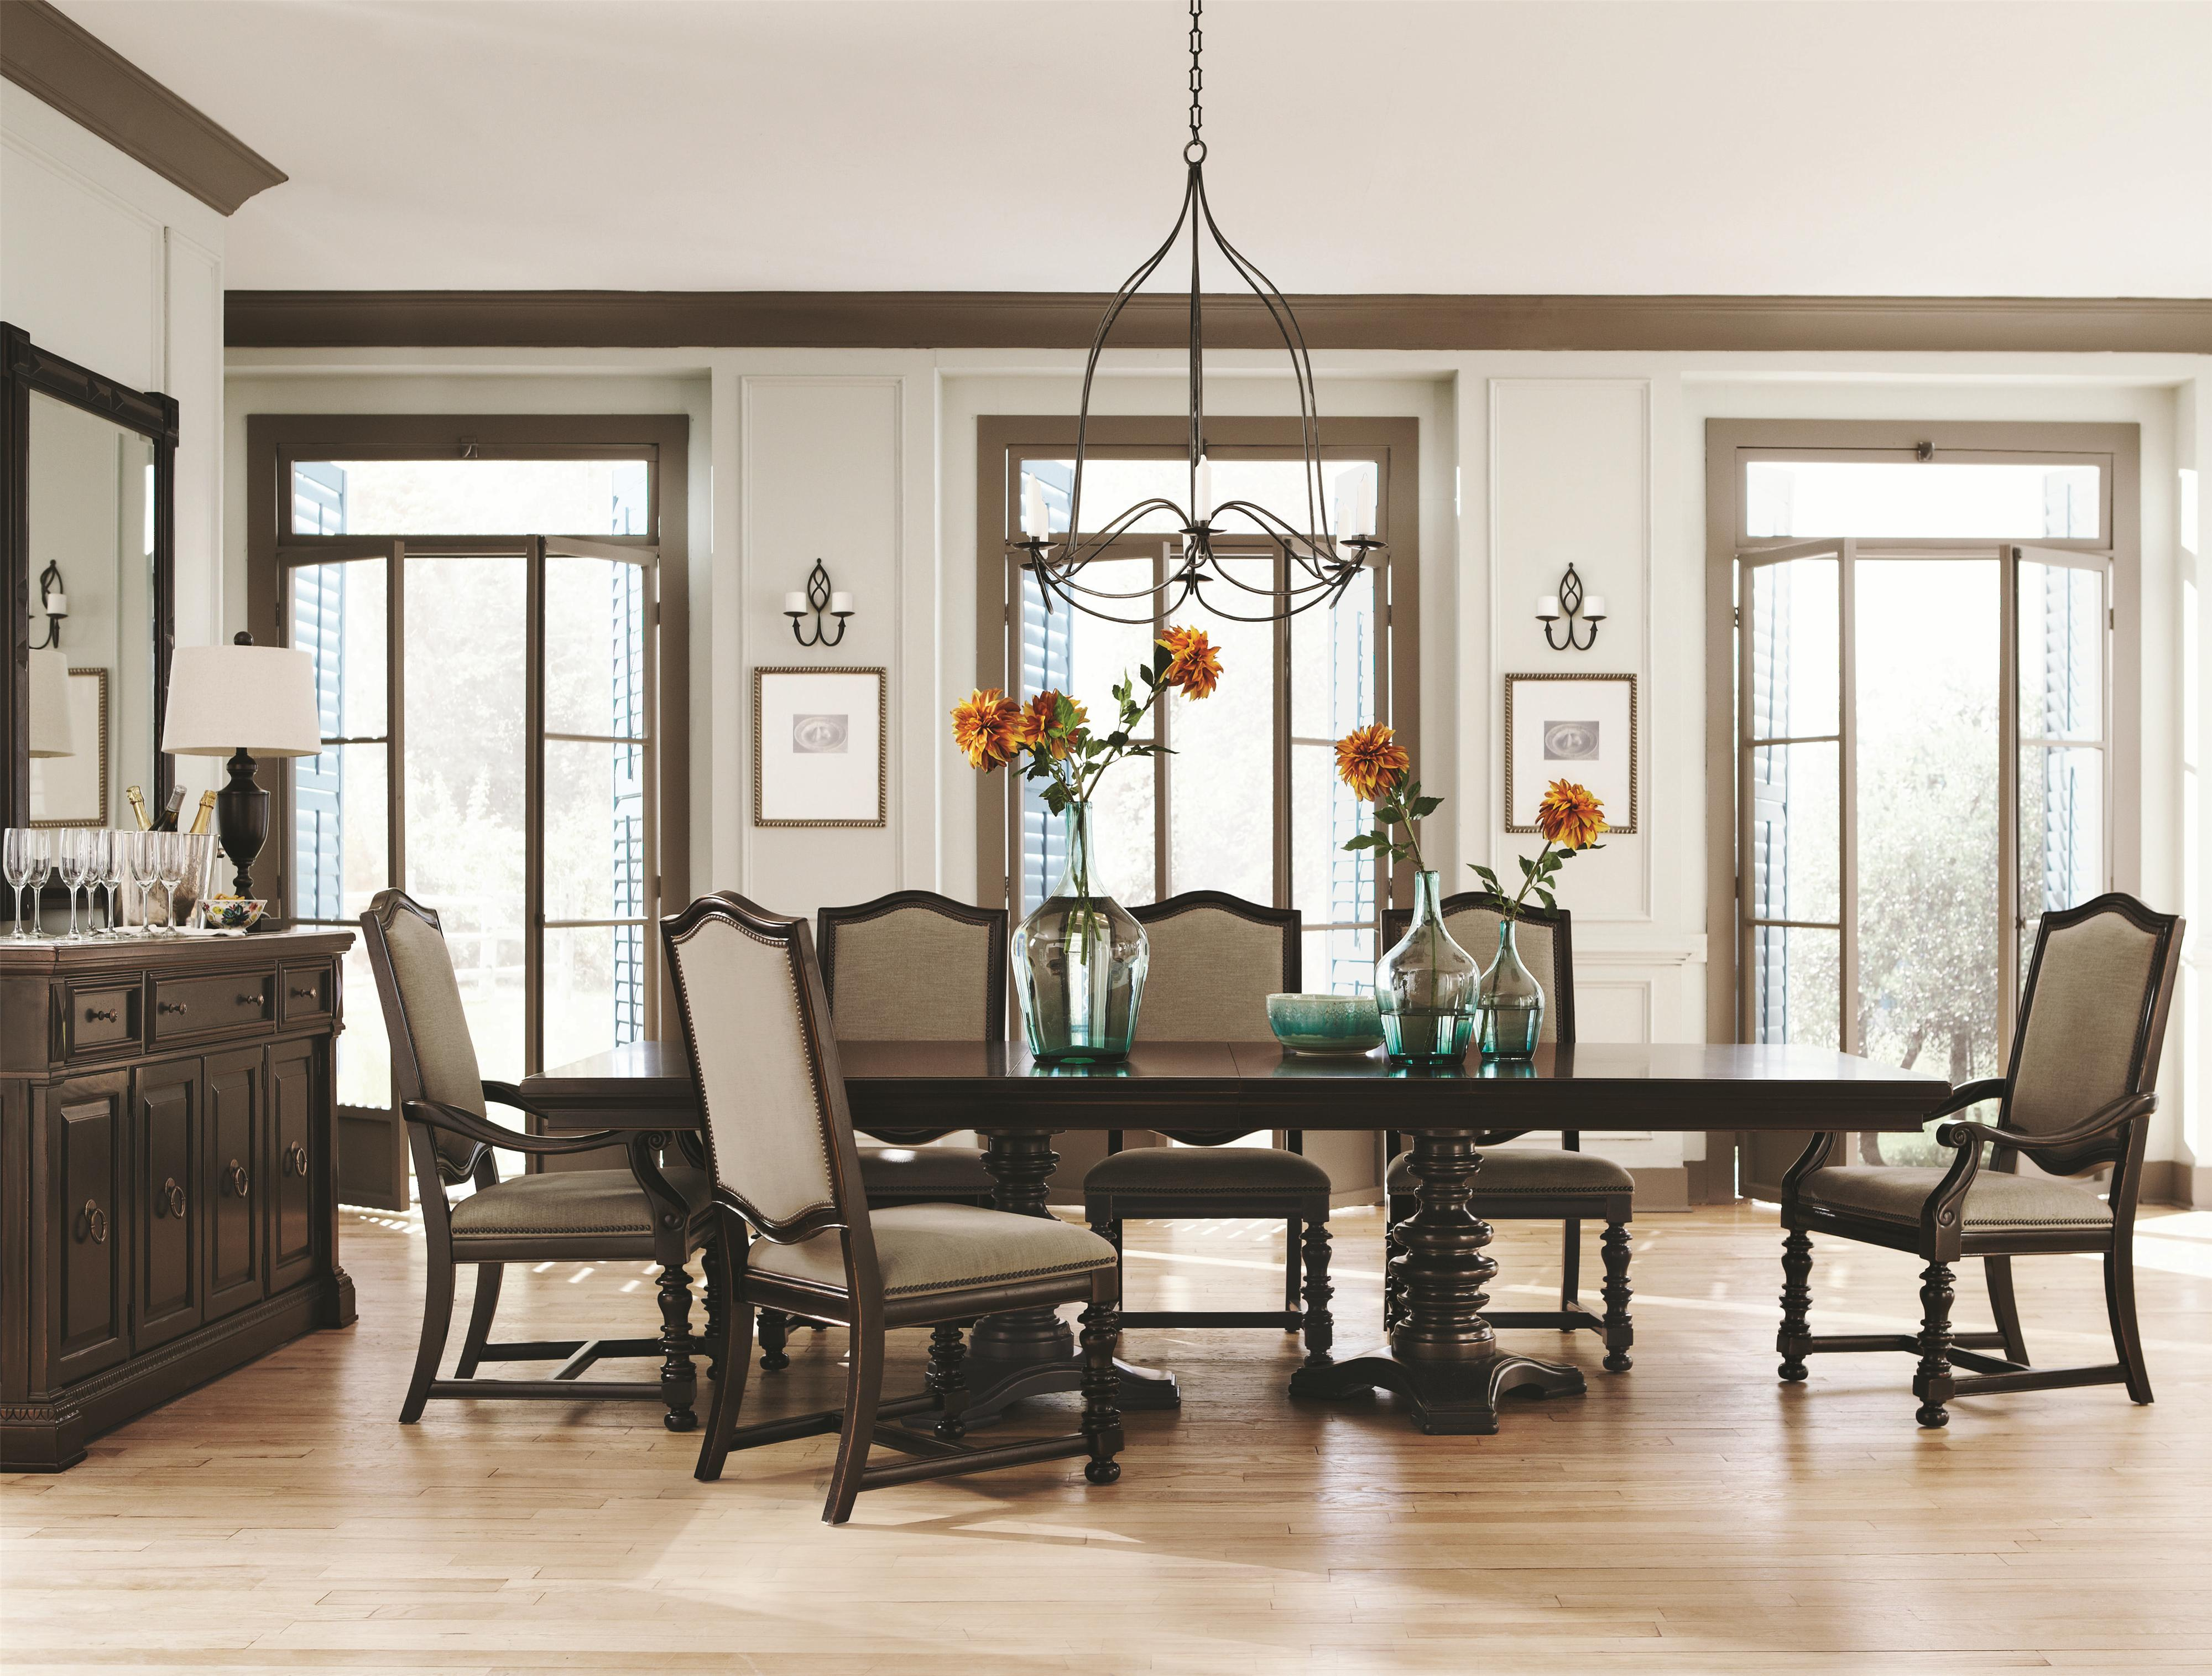 Used Bernhardt Dining Room Furniture Bernhardt Dining  : collections2Fbernhardt2Fpacific20canyon349 drp b1 from honansantiques.com size 4000 x 3030 jpeg 1057kB